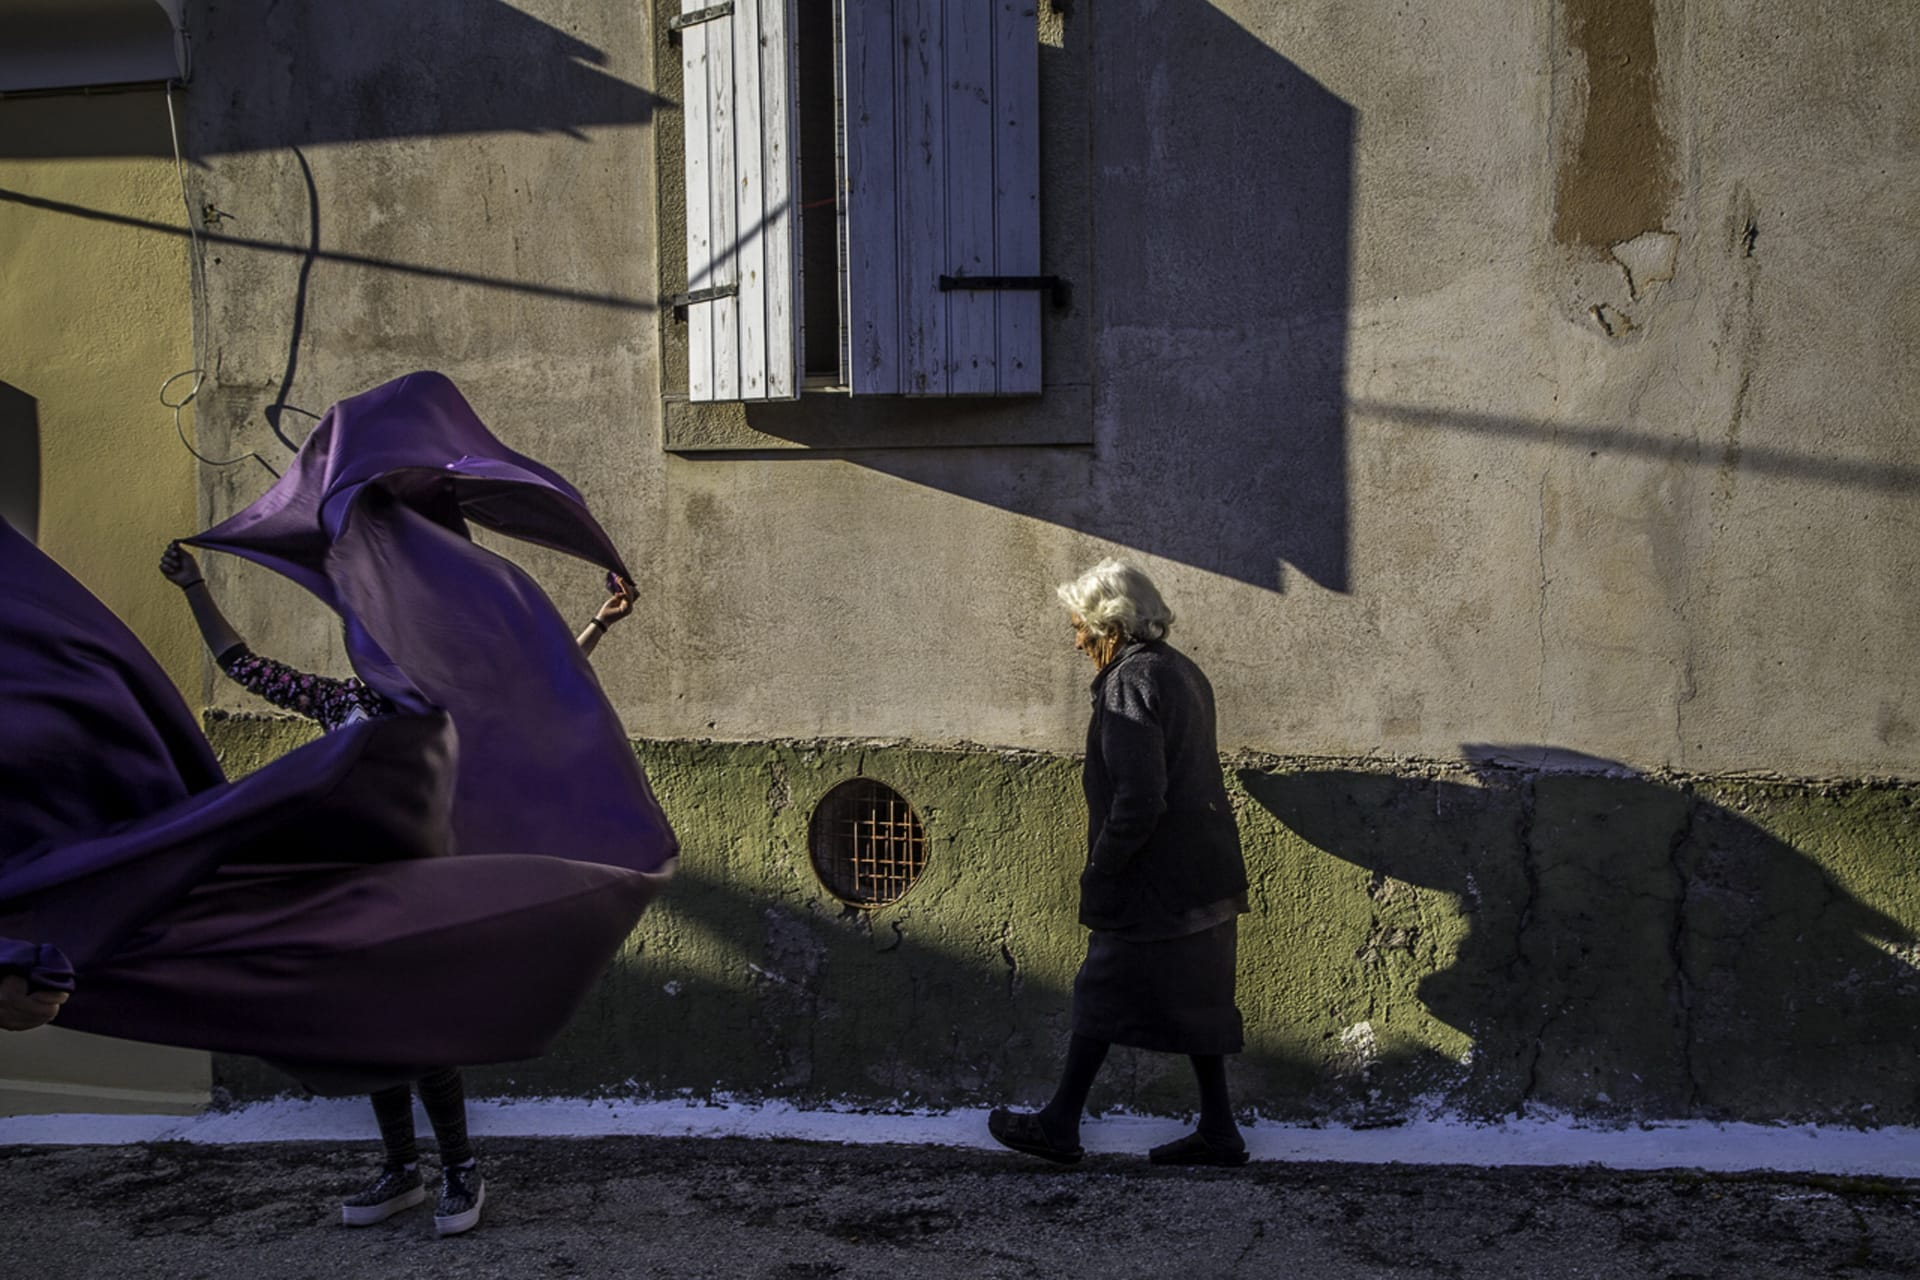 """Old & Young"" Street Photograph by Markos Kyprianos"